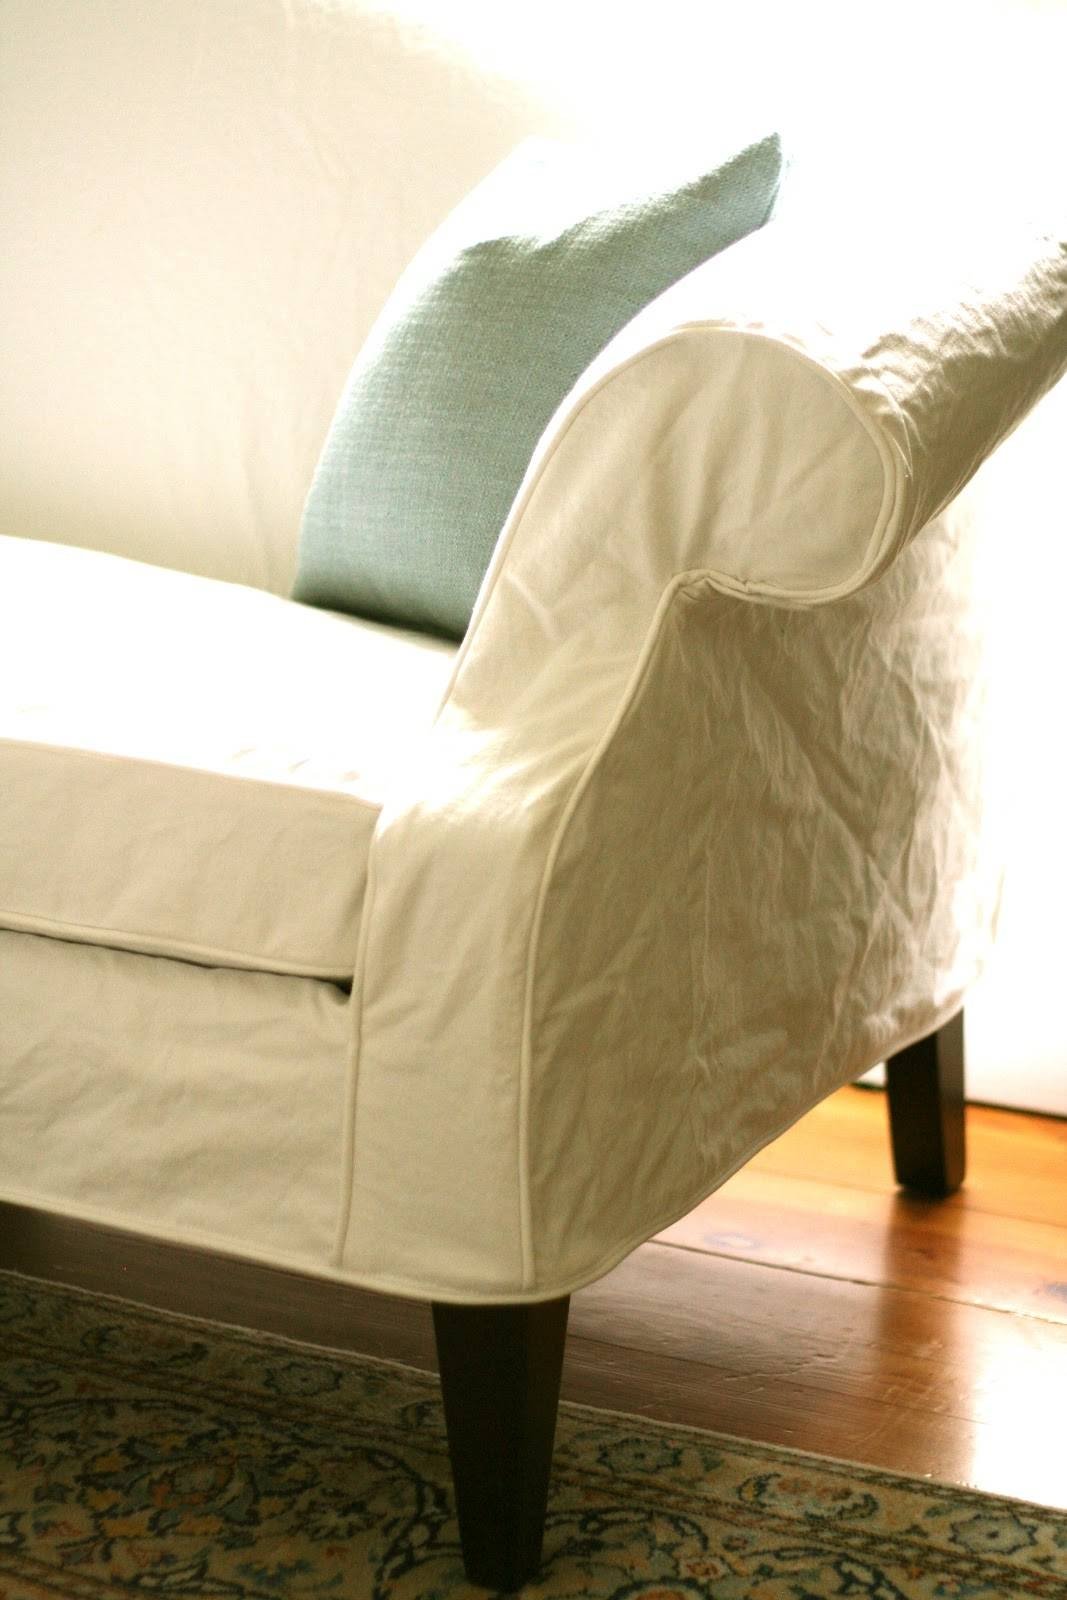 Custom Slipcoversshelley: White Camel Back Couch in Camel Back Couch Slipcovers (Image 9 of 15)